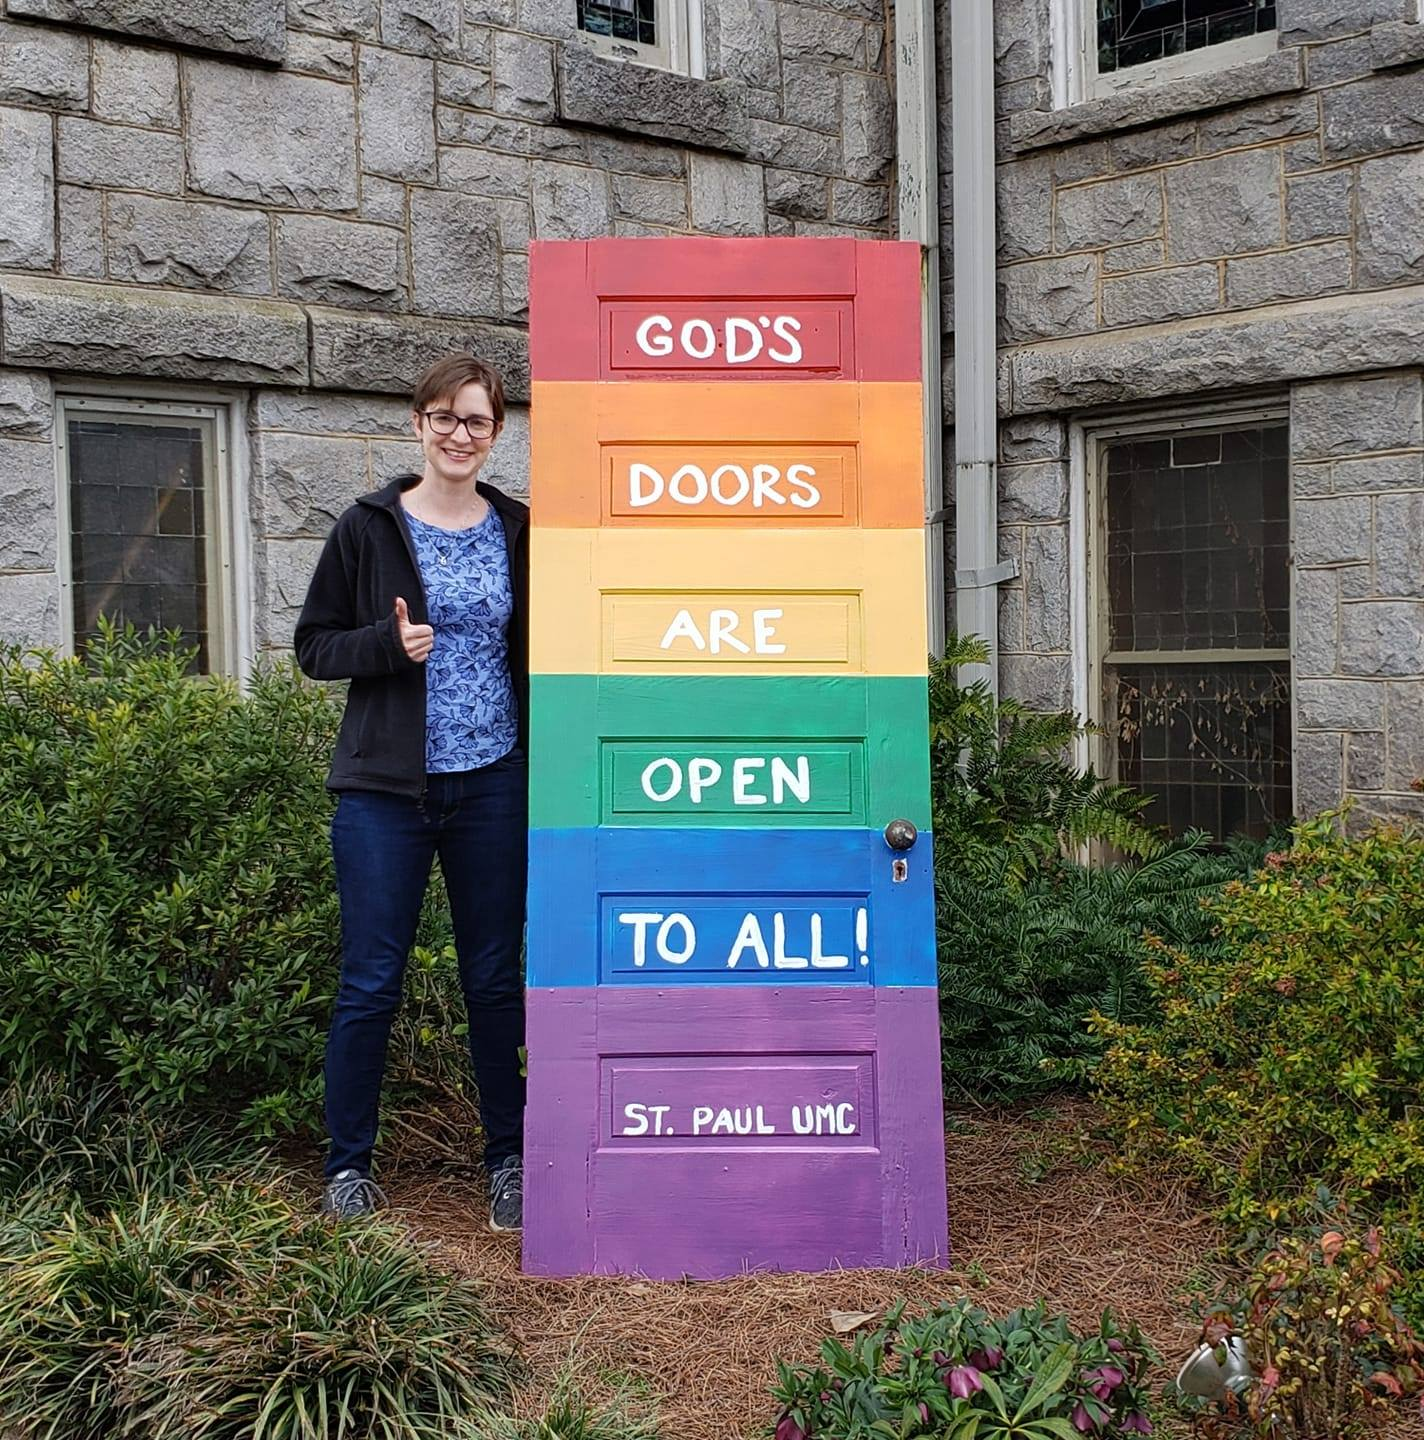 Rev. Cassie Noland Rapko - St. Paul United Methodist Church, Atlanta, GeorgiaPrayers of the People can be found below